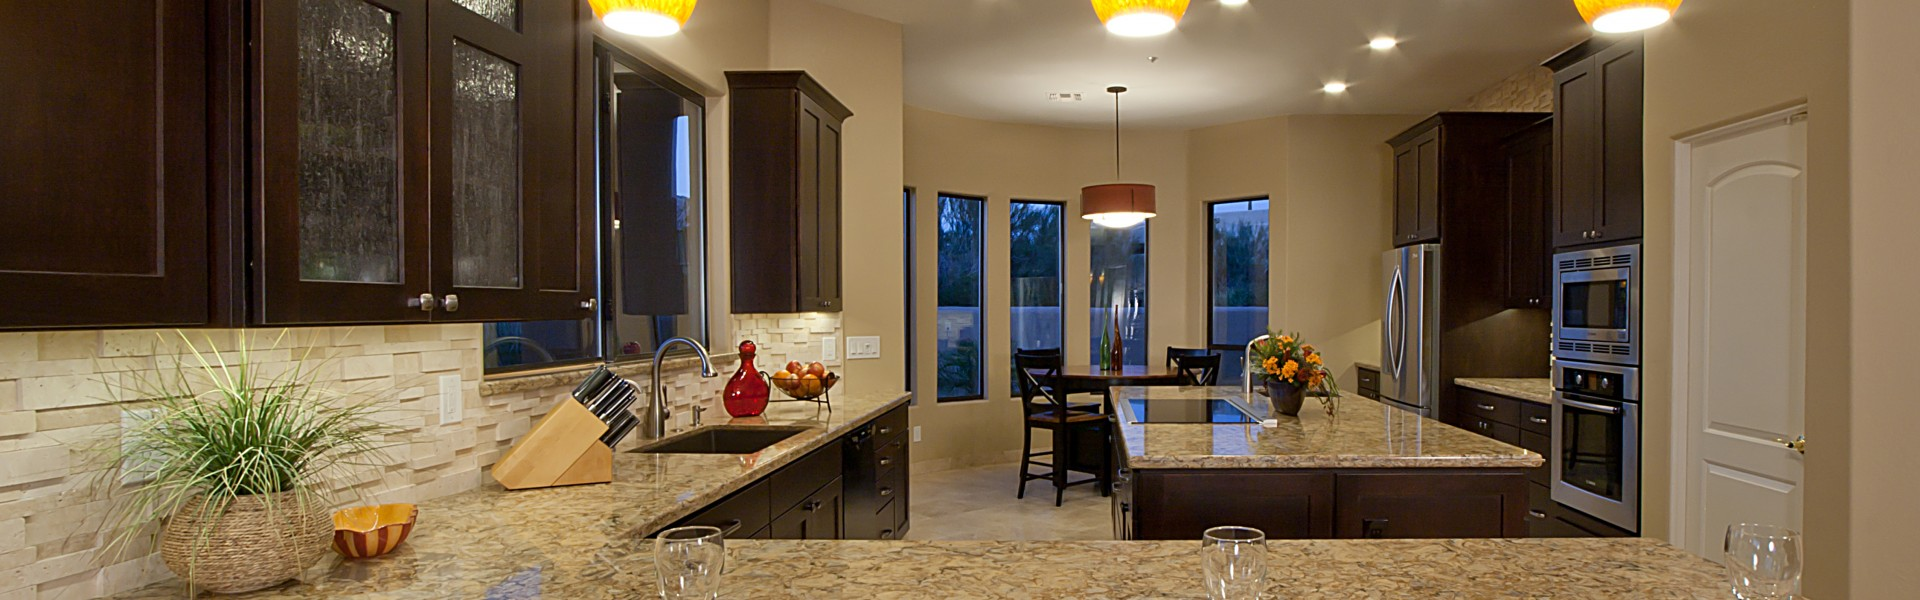 Home Interior Remodeling Interior Design  Kitchen Remodel  Bath Remodeling  Custom Home .